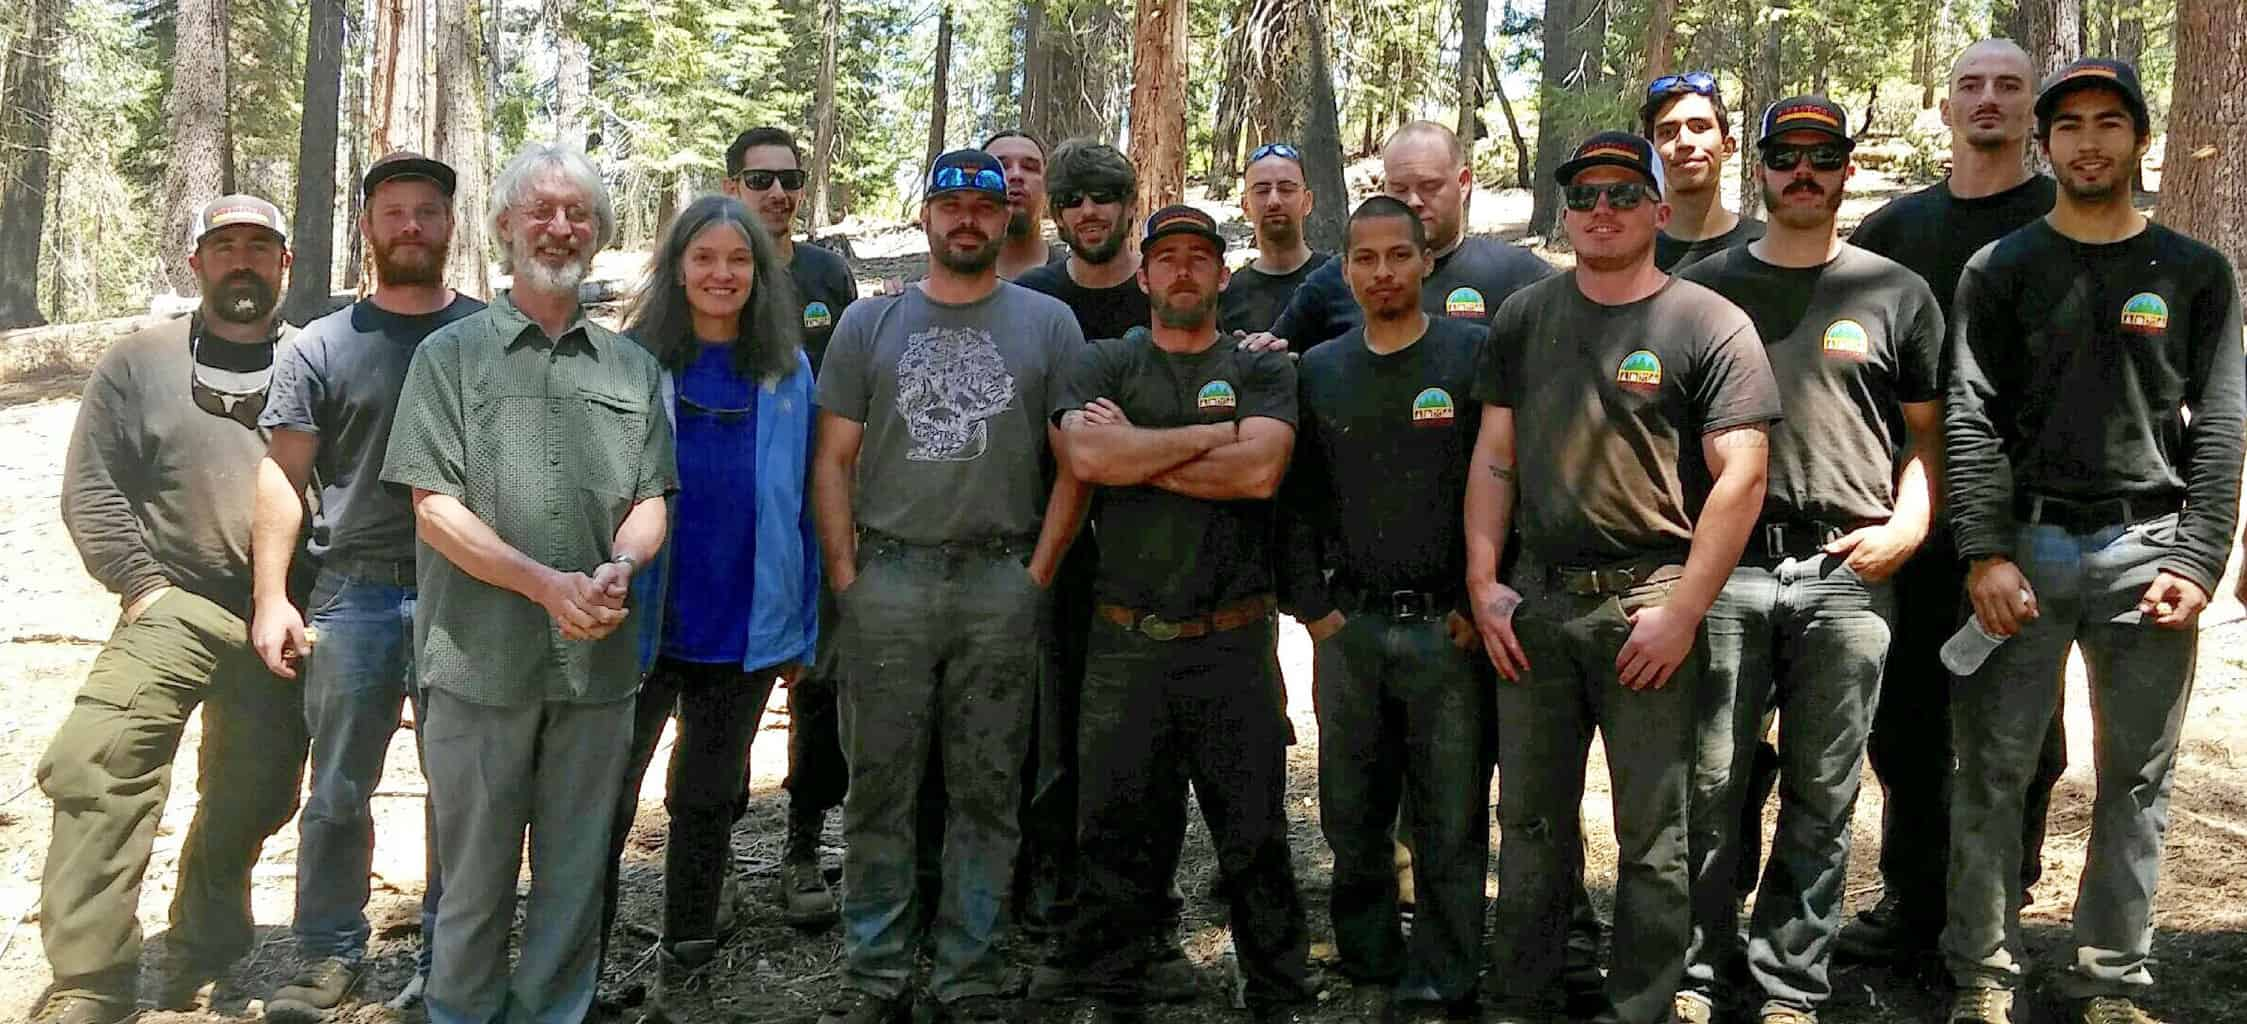 Kimberley and John with 16 Firestorm crew members, with trees in the background